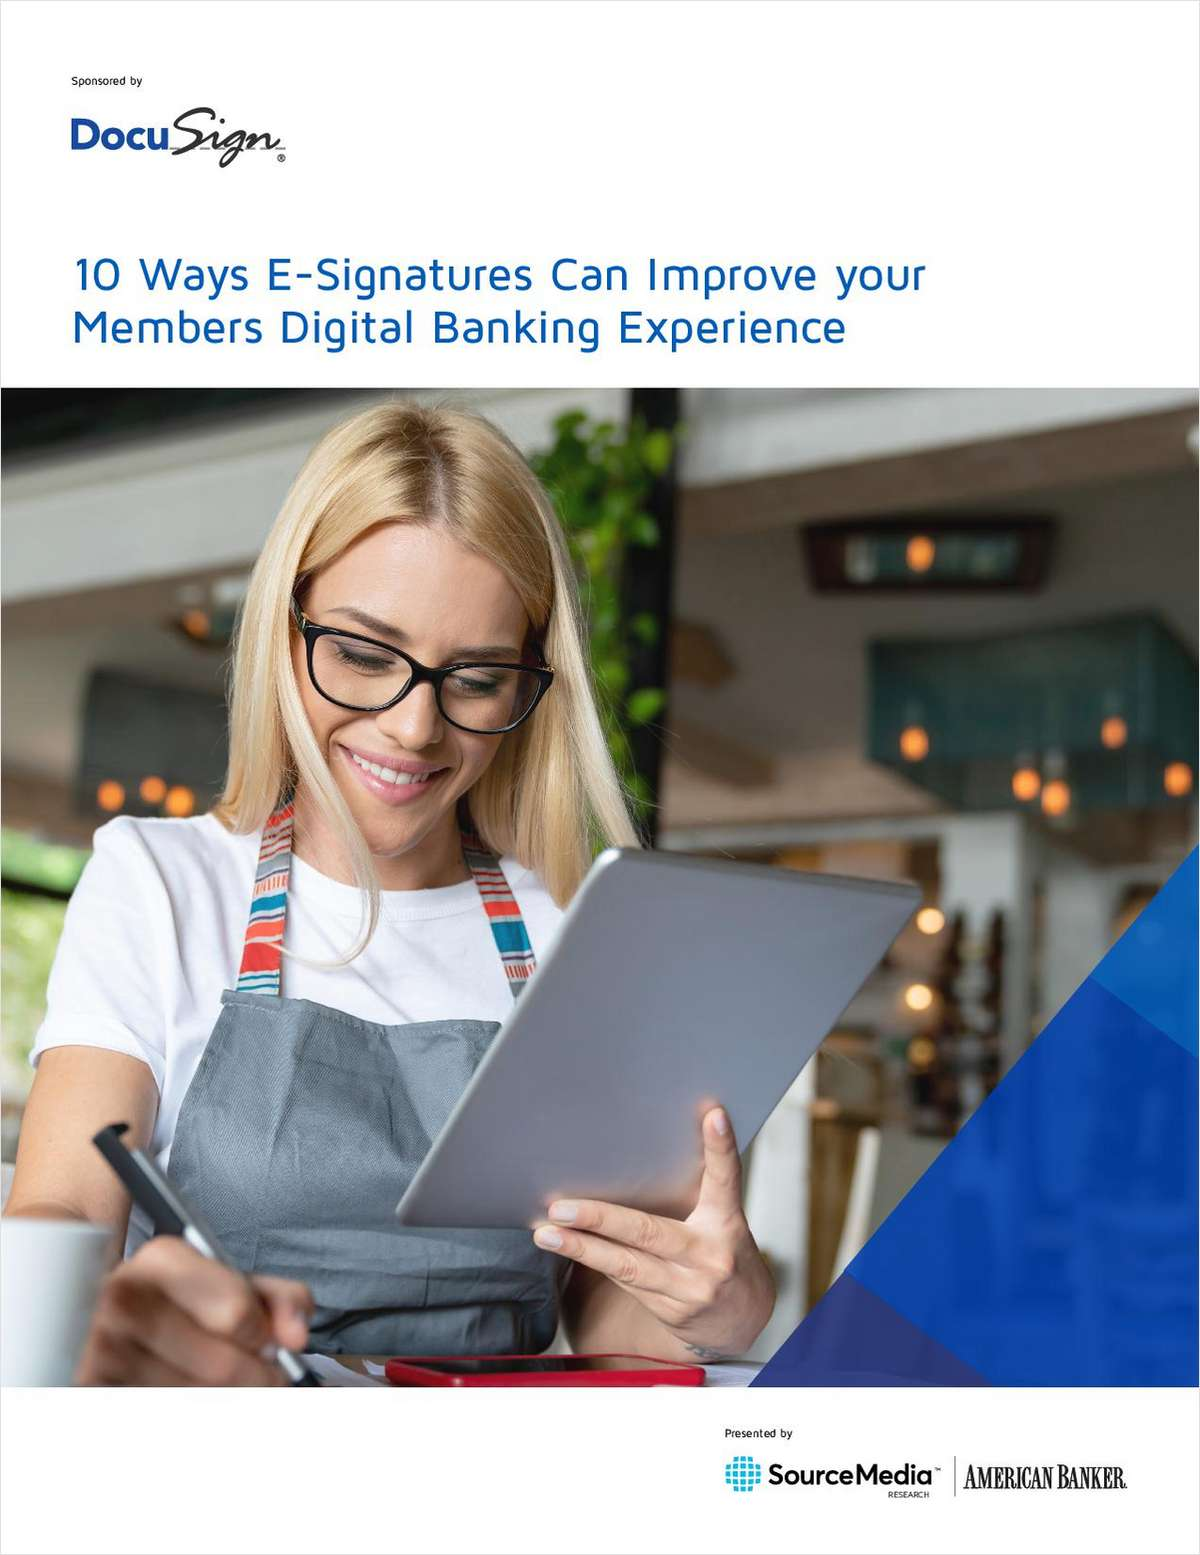 10 Ways E-Signatures Can Improve Your Members' Digital Banking Experience